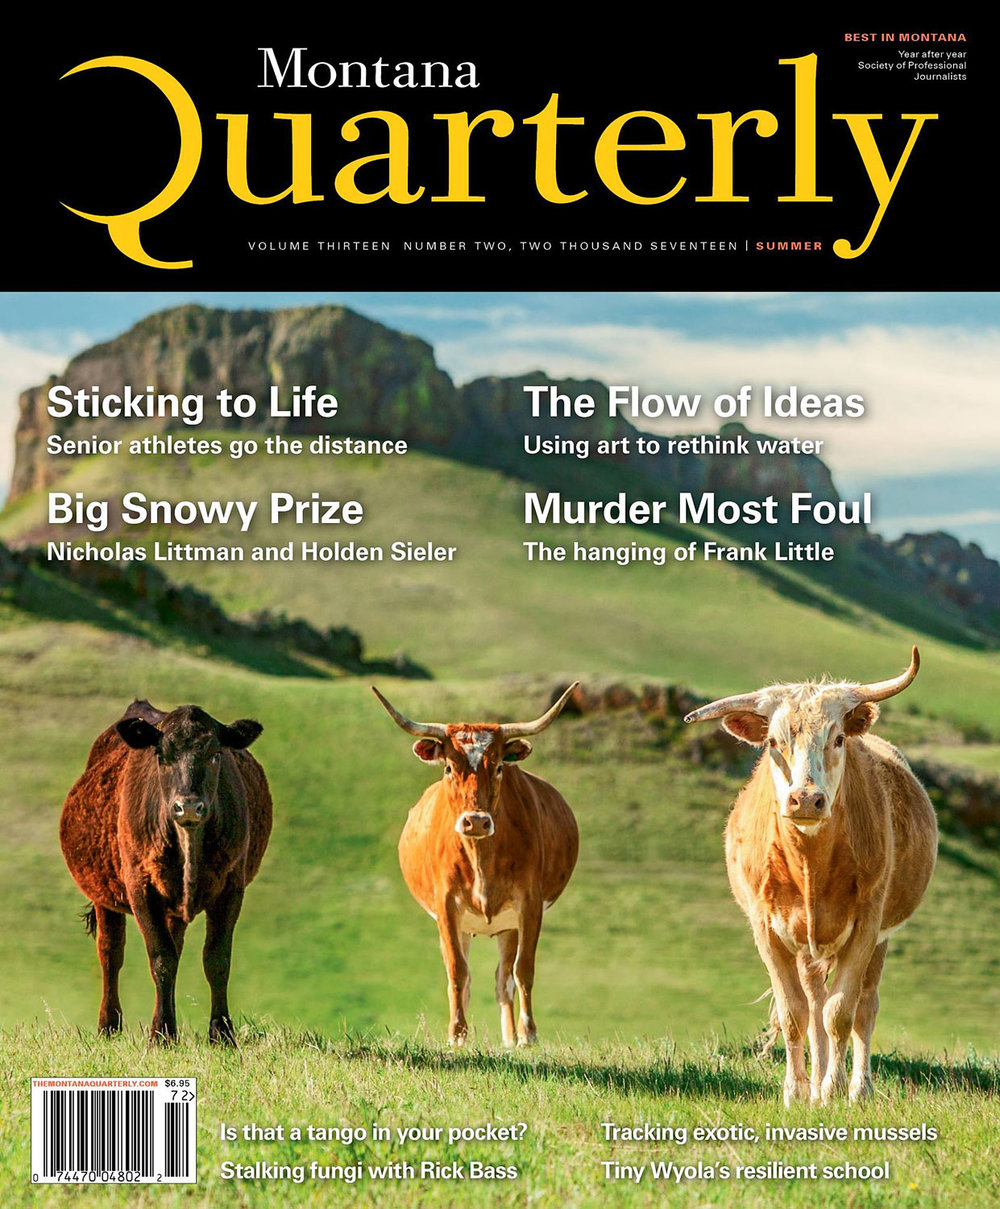 Cattle Photography on Cover of Montana Quarterly Magazine by Todd Klassy